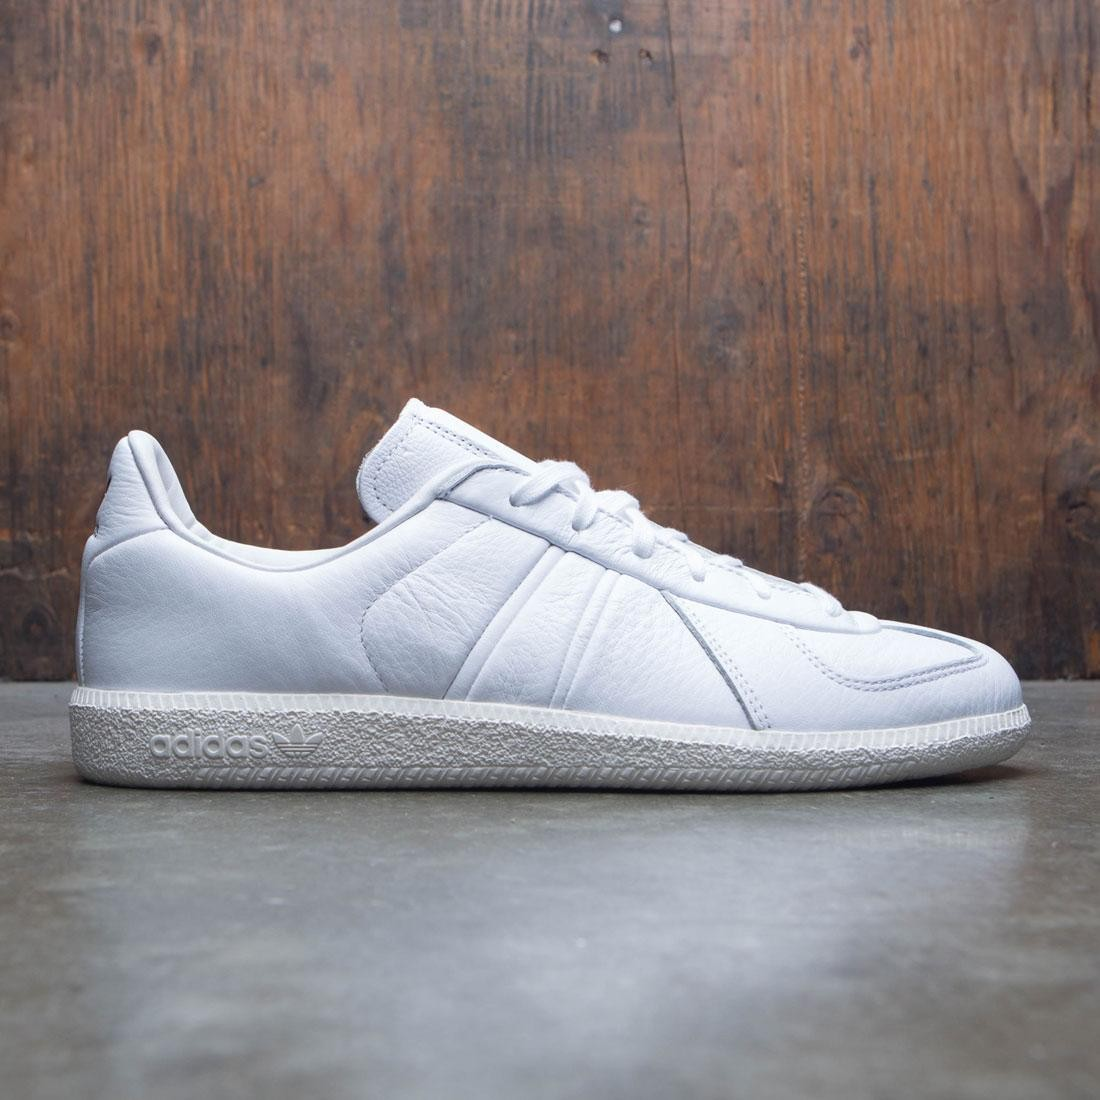 timeless design 3a663 337ca Adidas x Oyster Holdings Men BW Army Oyster (white / off white / core black)